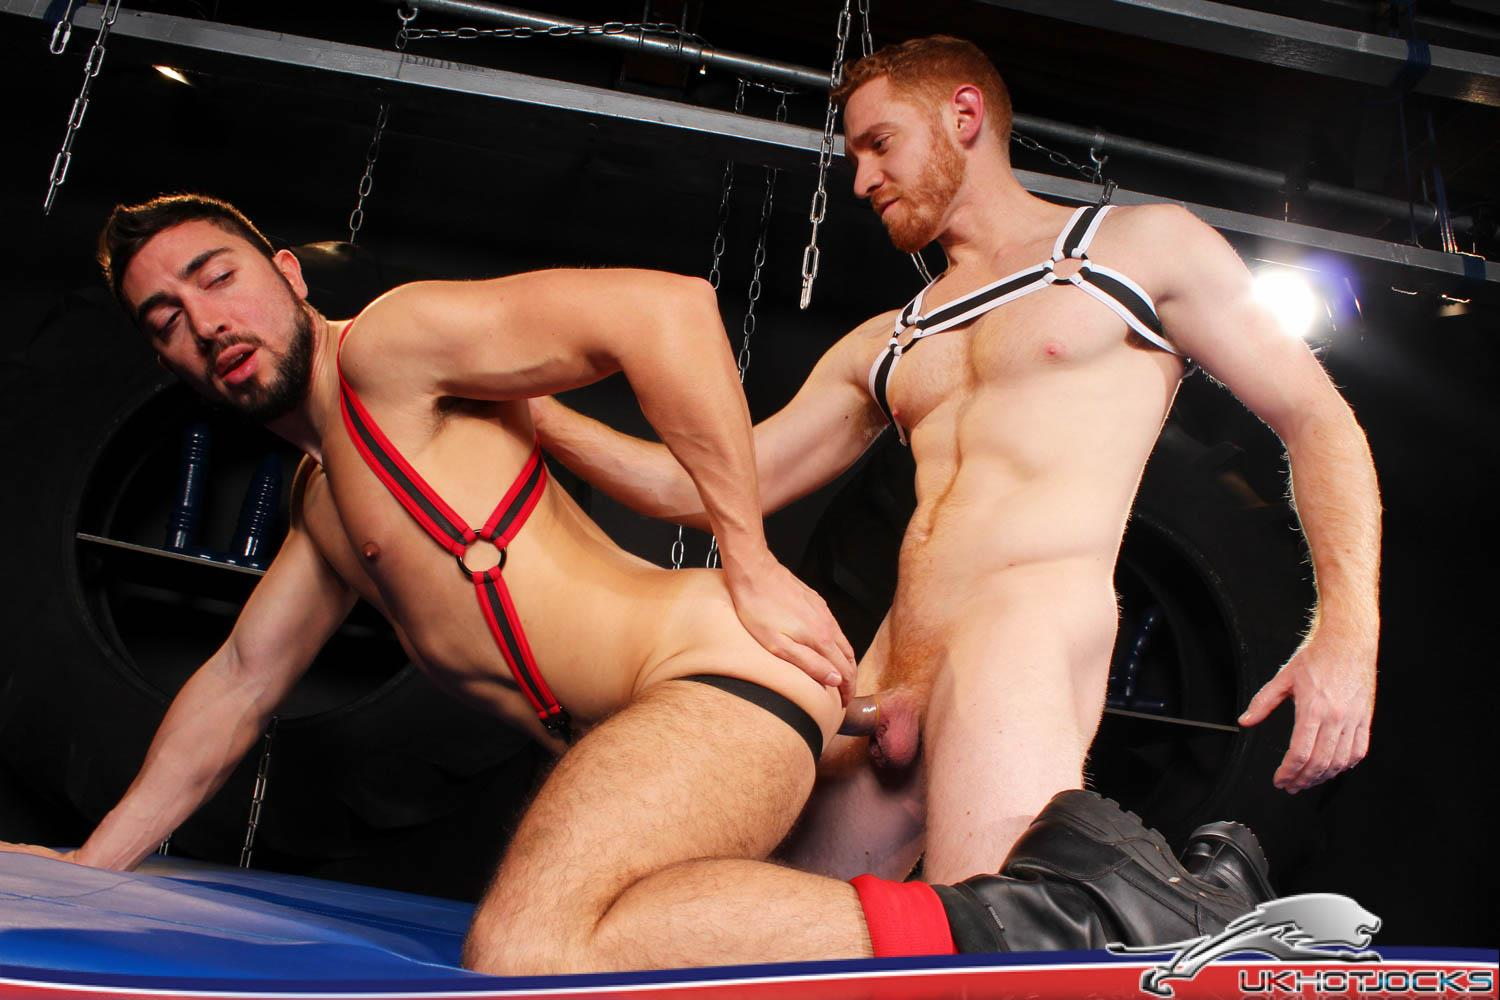 UK Hot Jocks Gaston Croupier and Leander Big Uncut Ginger Cock 20 Gaston Croupier Takes Leanders Big Uncut Cock And A Huge Dildo!